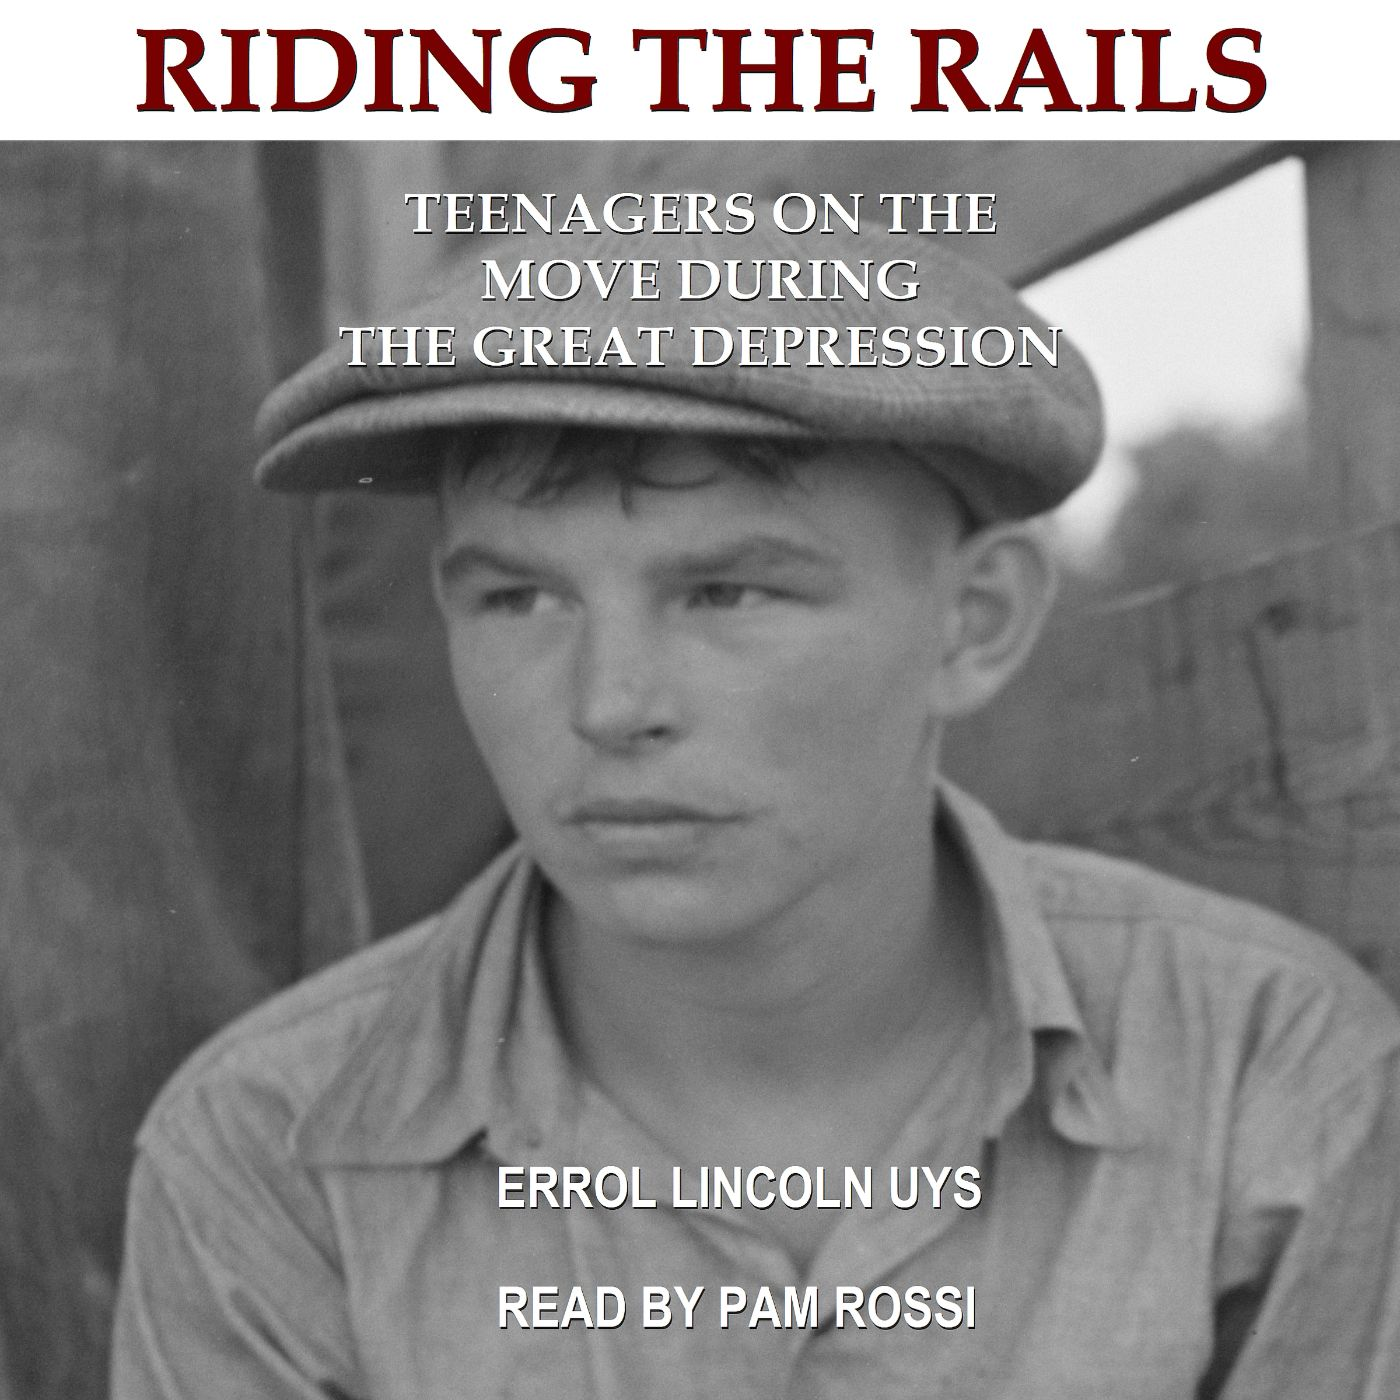 Riding the Rails: Teenagers on the Move During the Great Depression - Audiobook